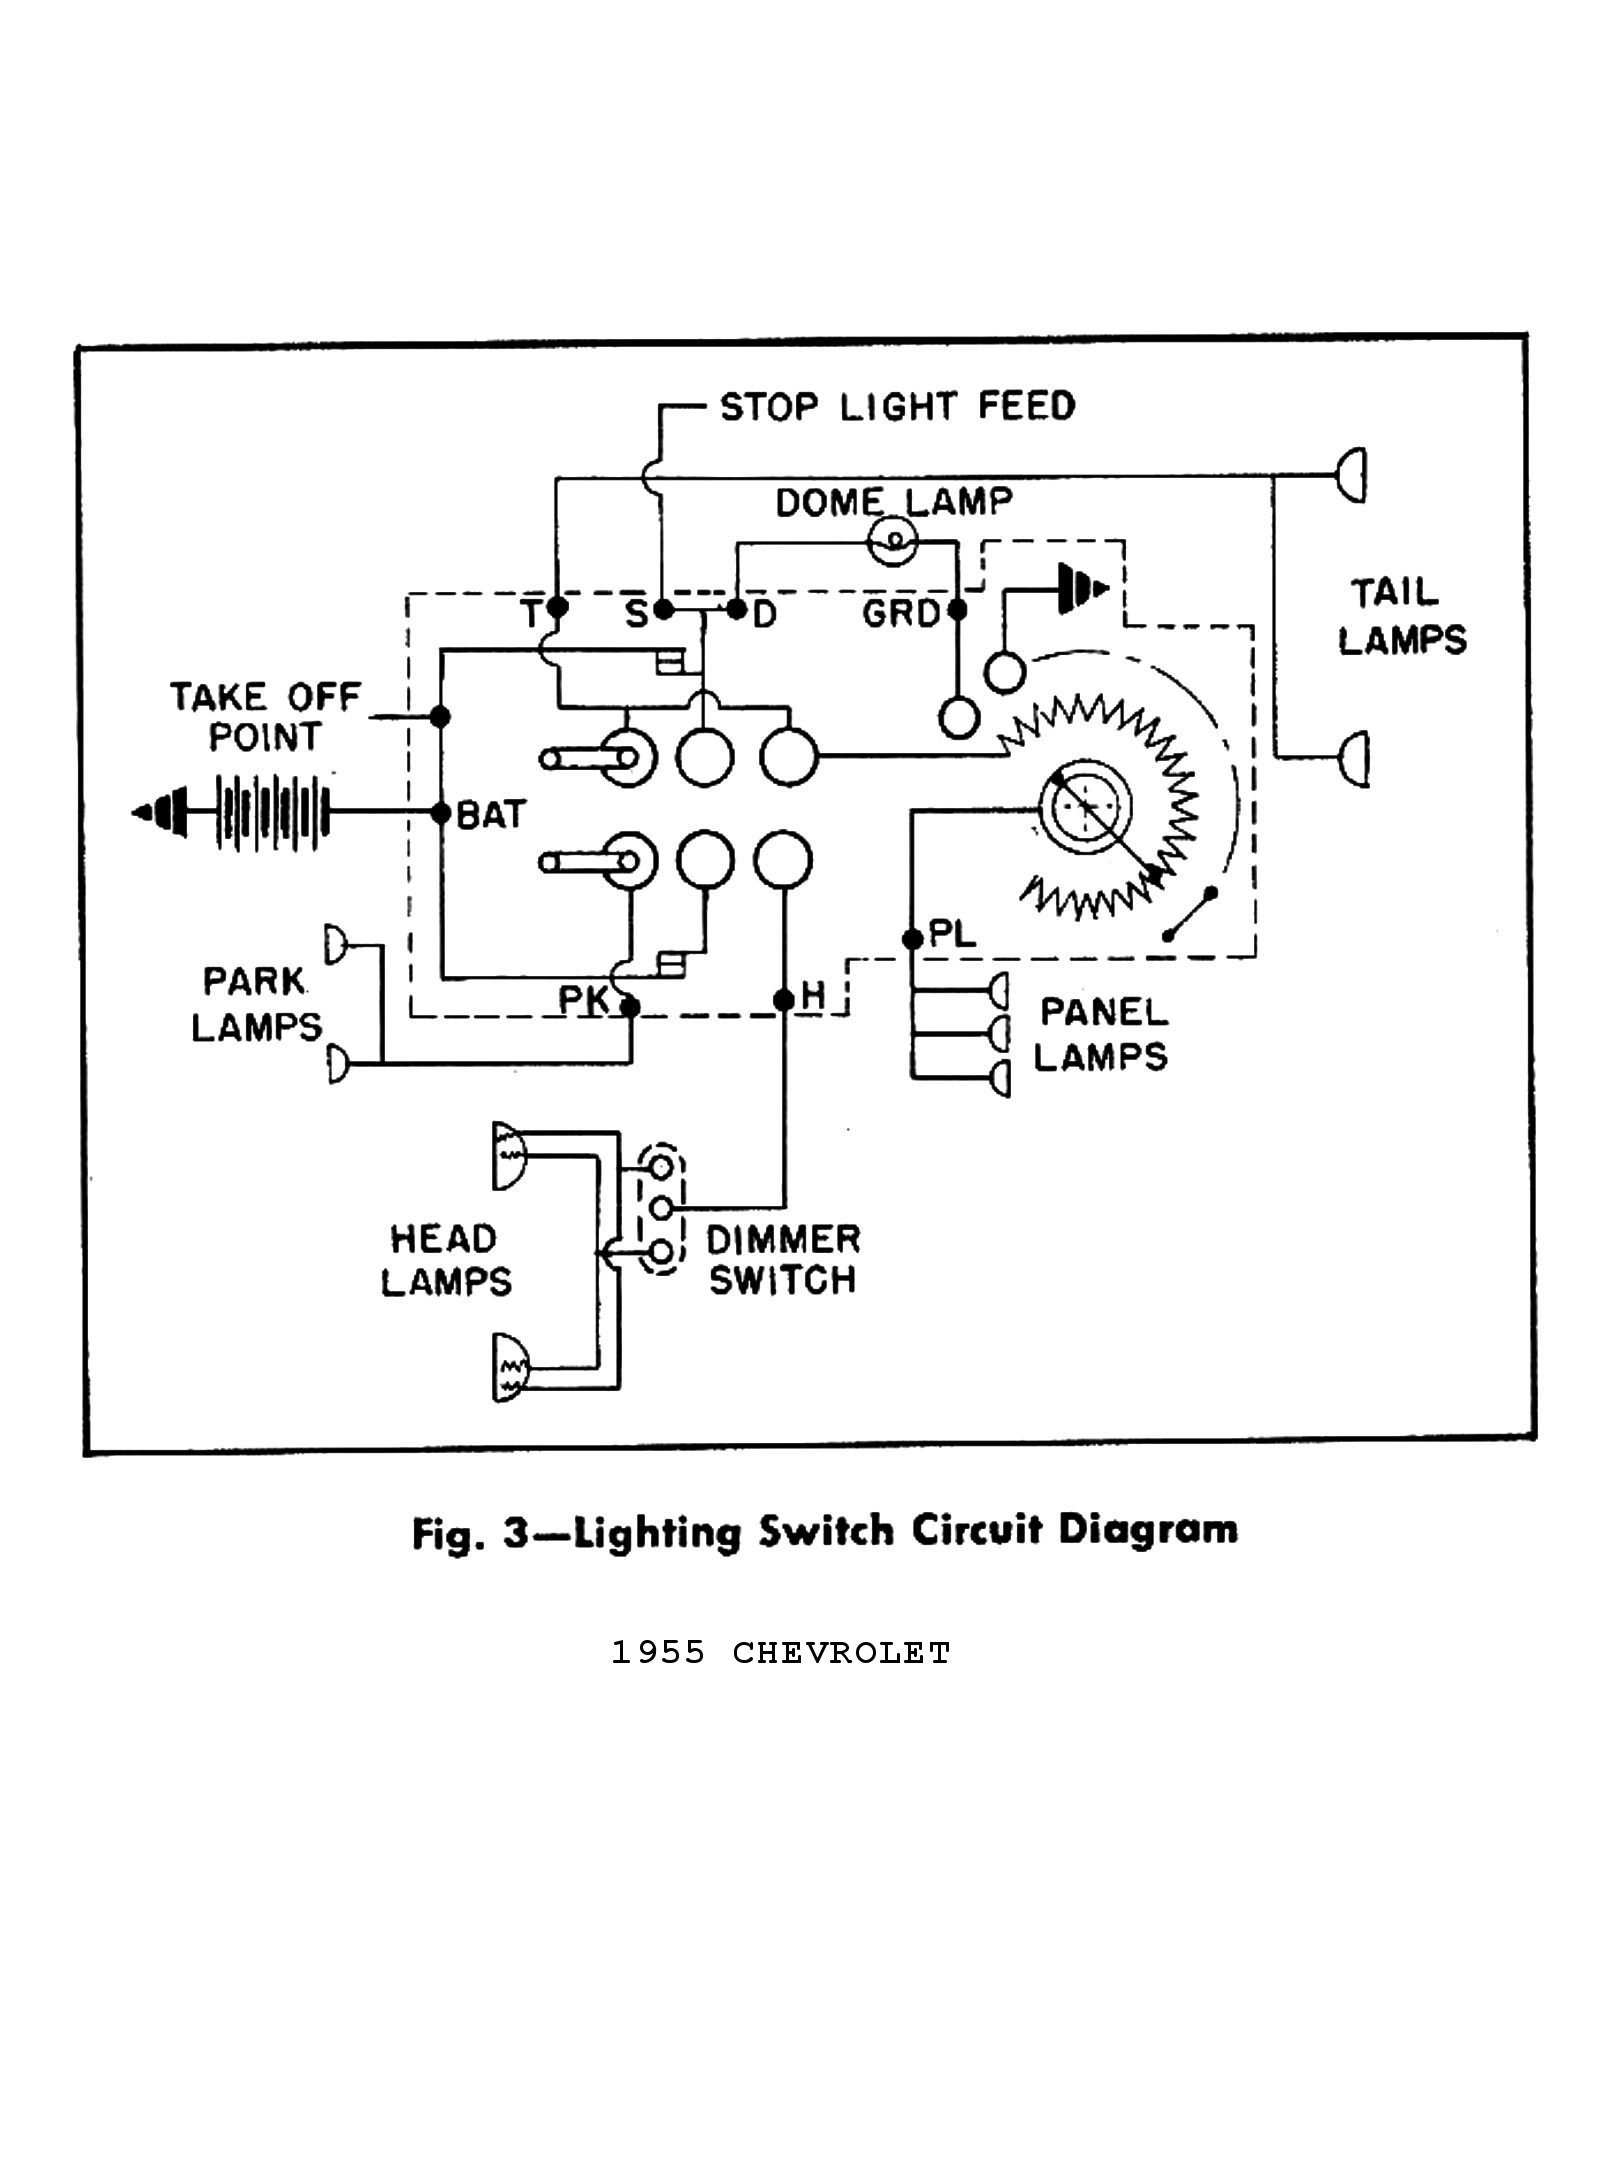 59 Chevy Truck Ignition Switch Wiring Diagram Great Installation Foot Operated Dimmer Headlight 1951 Todays Rh 7 12 1813weddingbarn Com Universal Mercury